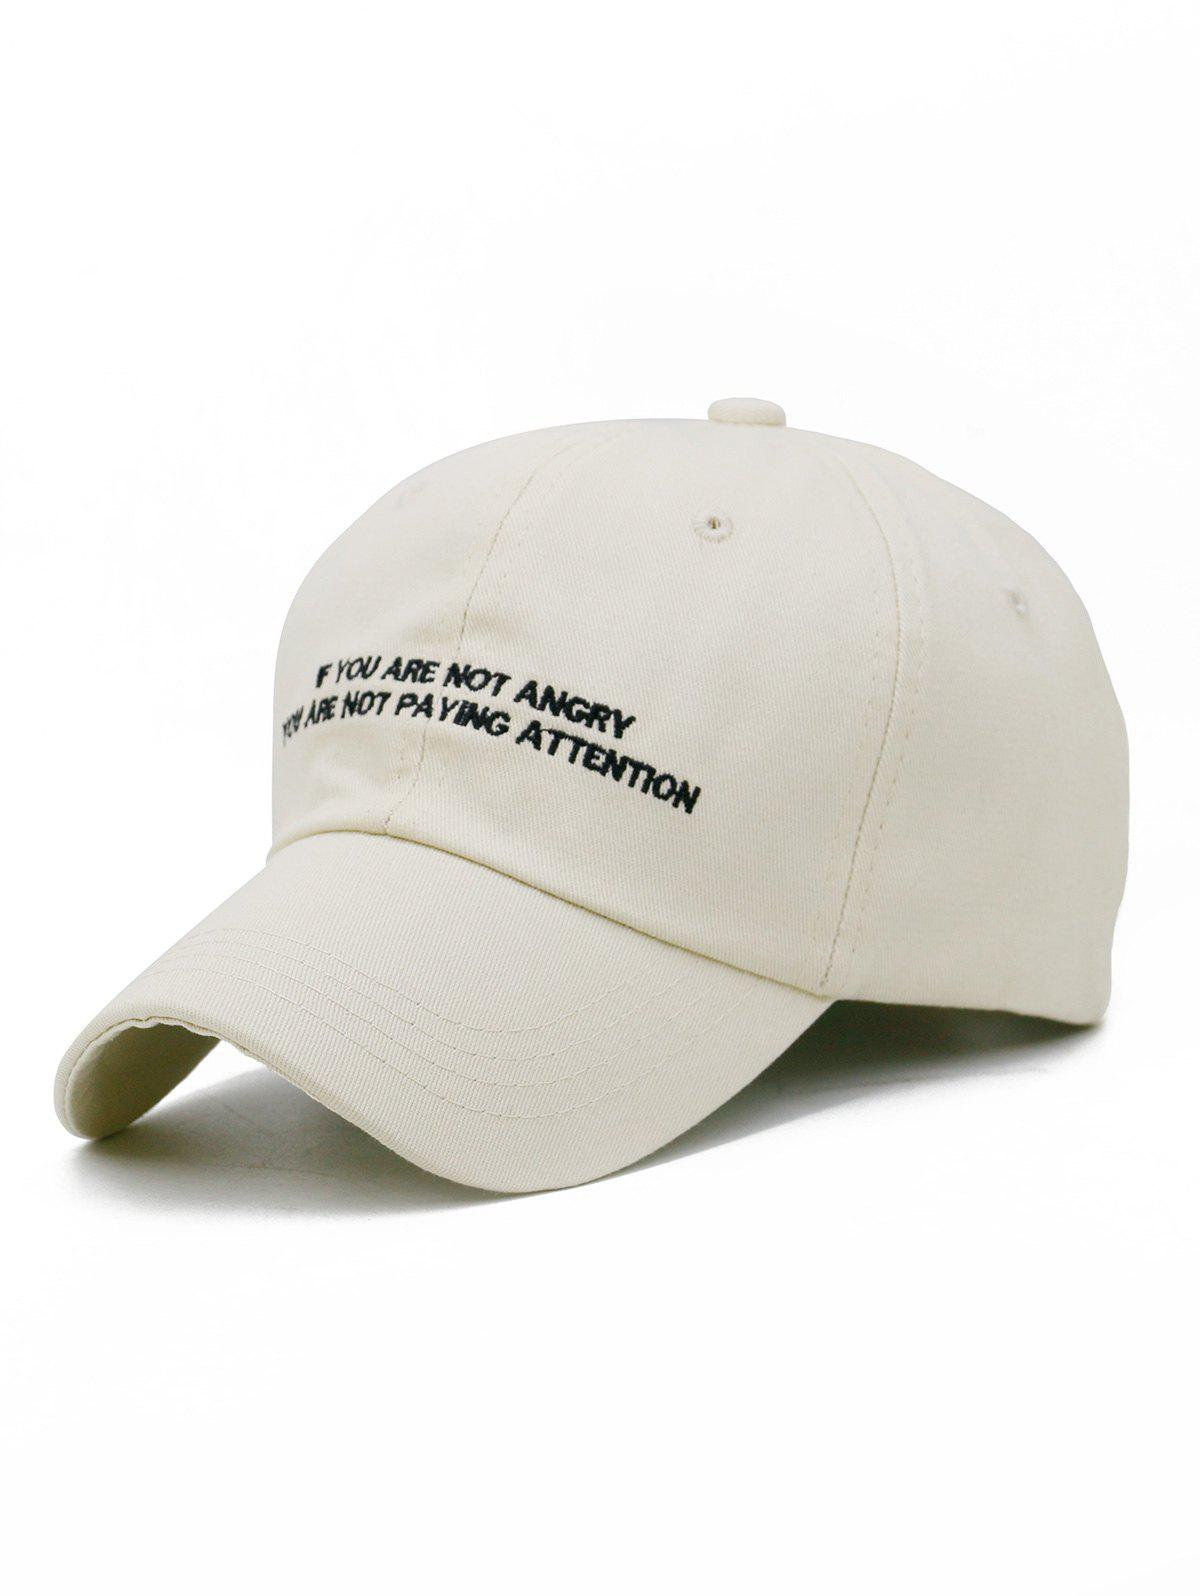 Discount Letter Sentence Embroidery Adjustable Baseball Cap